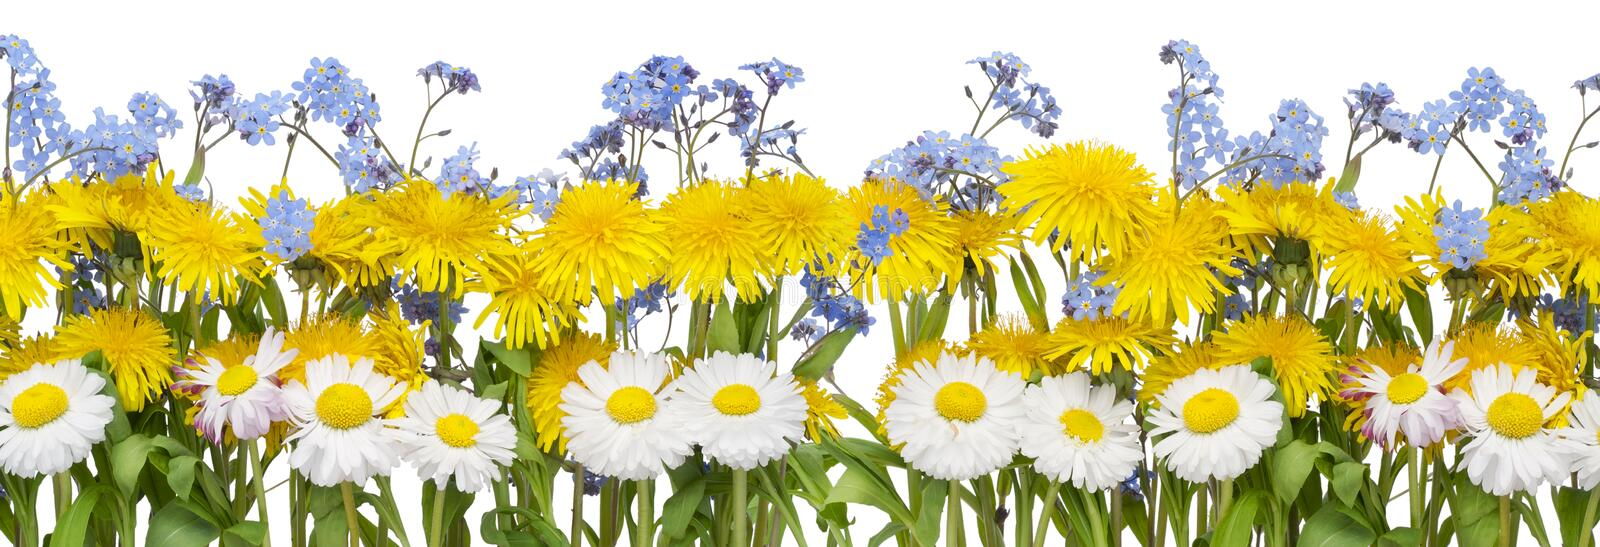 Real spring flowers border stock photo image of blue 19534594 download real spring flowers border stock photo image of blue 19534594 mightylinksfo